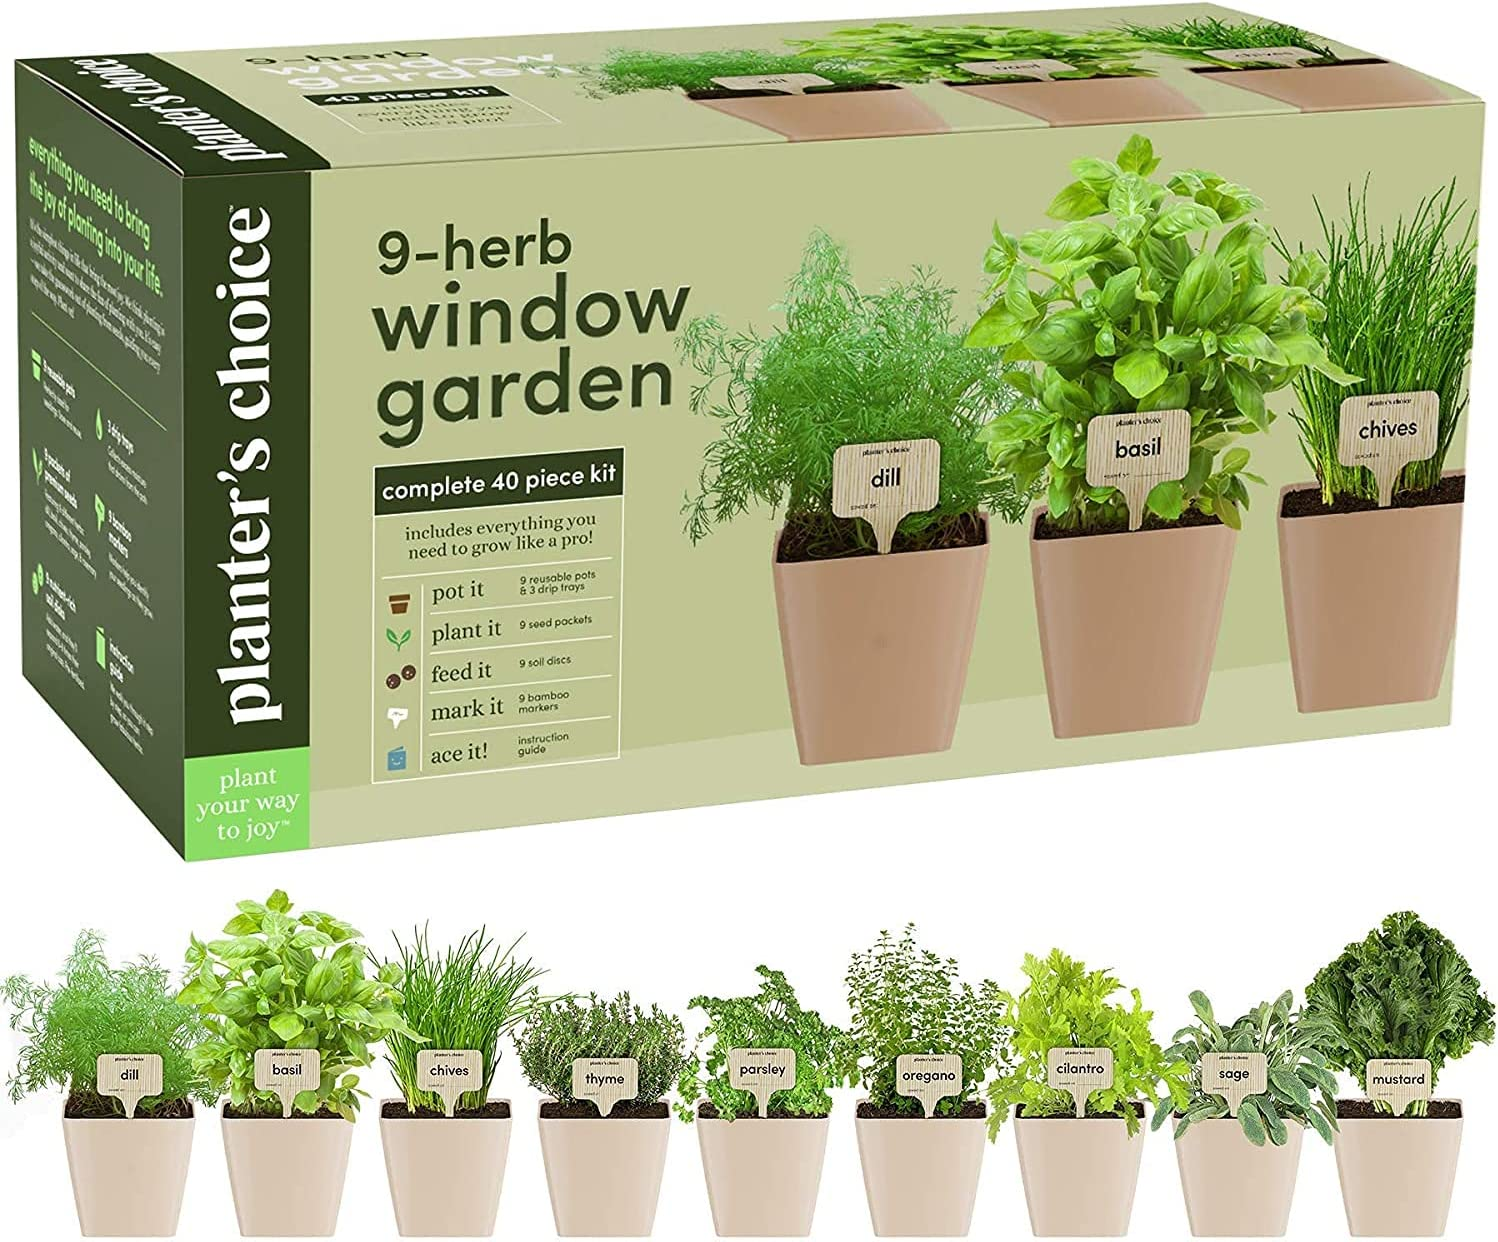 Amazon Com 9 Herb Window Garden Indoor Herb Growing Kit Kitchen Windowsill Starter Kit Easily Grow 9 Herbs Plants From Scratch With Comprehensive Guide Unique Gardening Gifts For